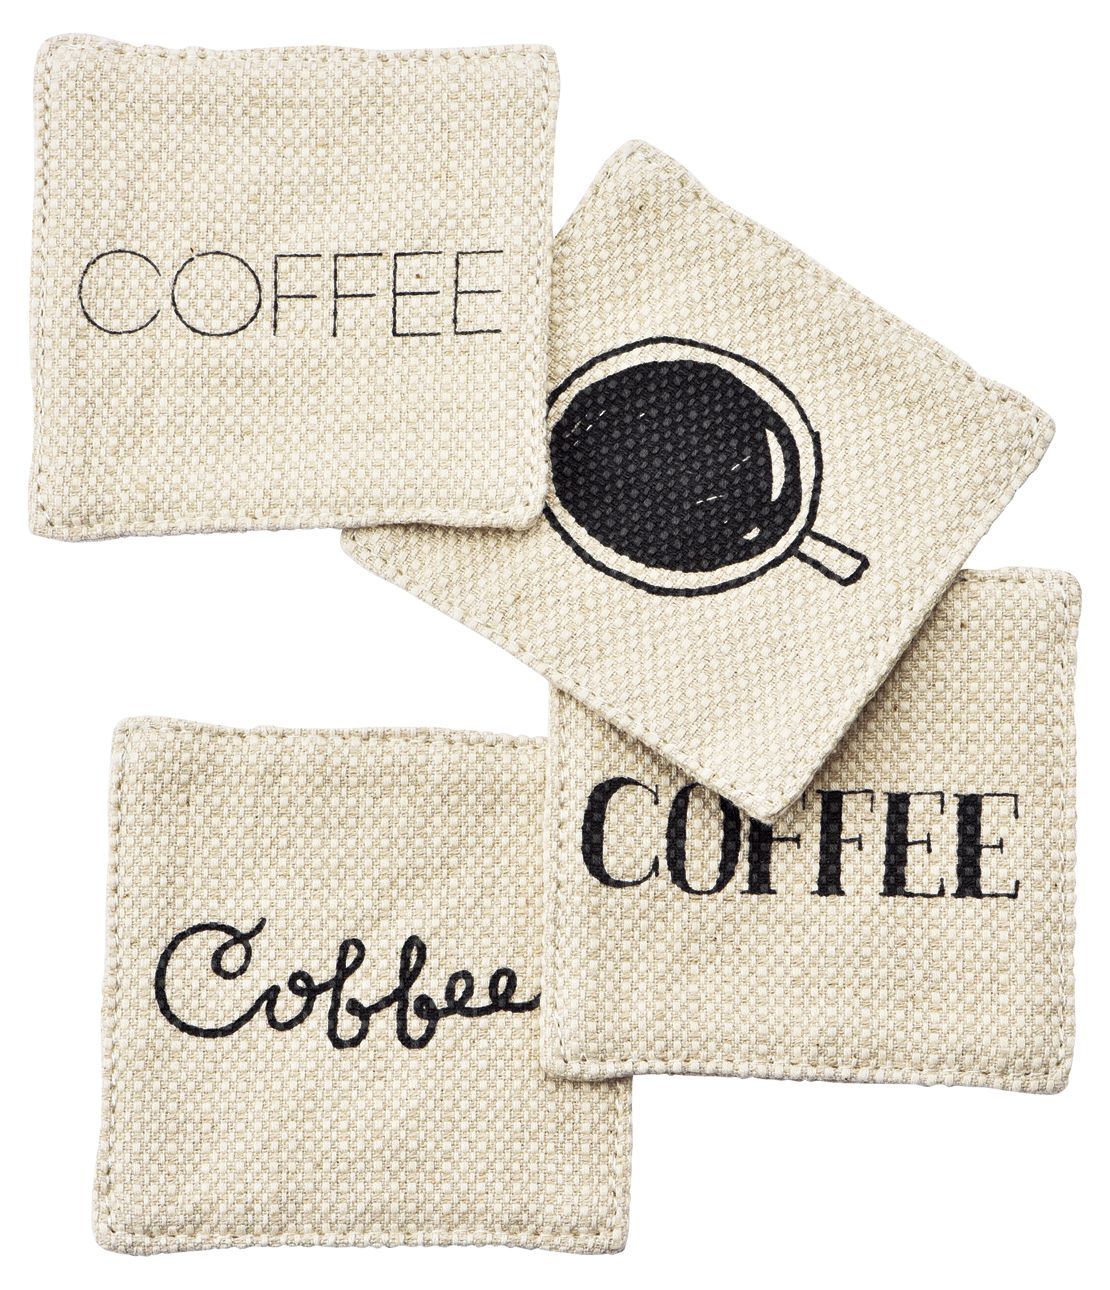 Catherine coasters (set of 4)